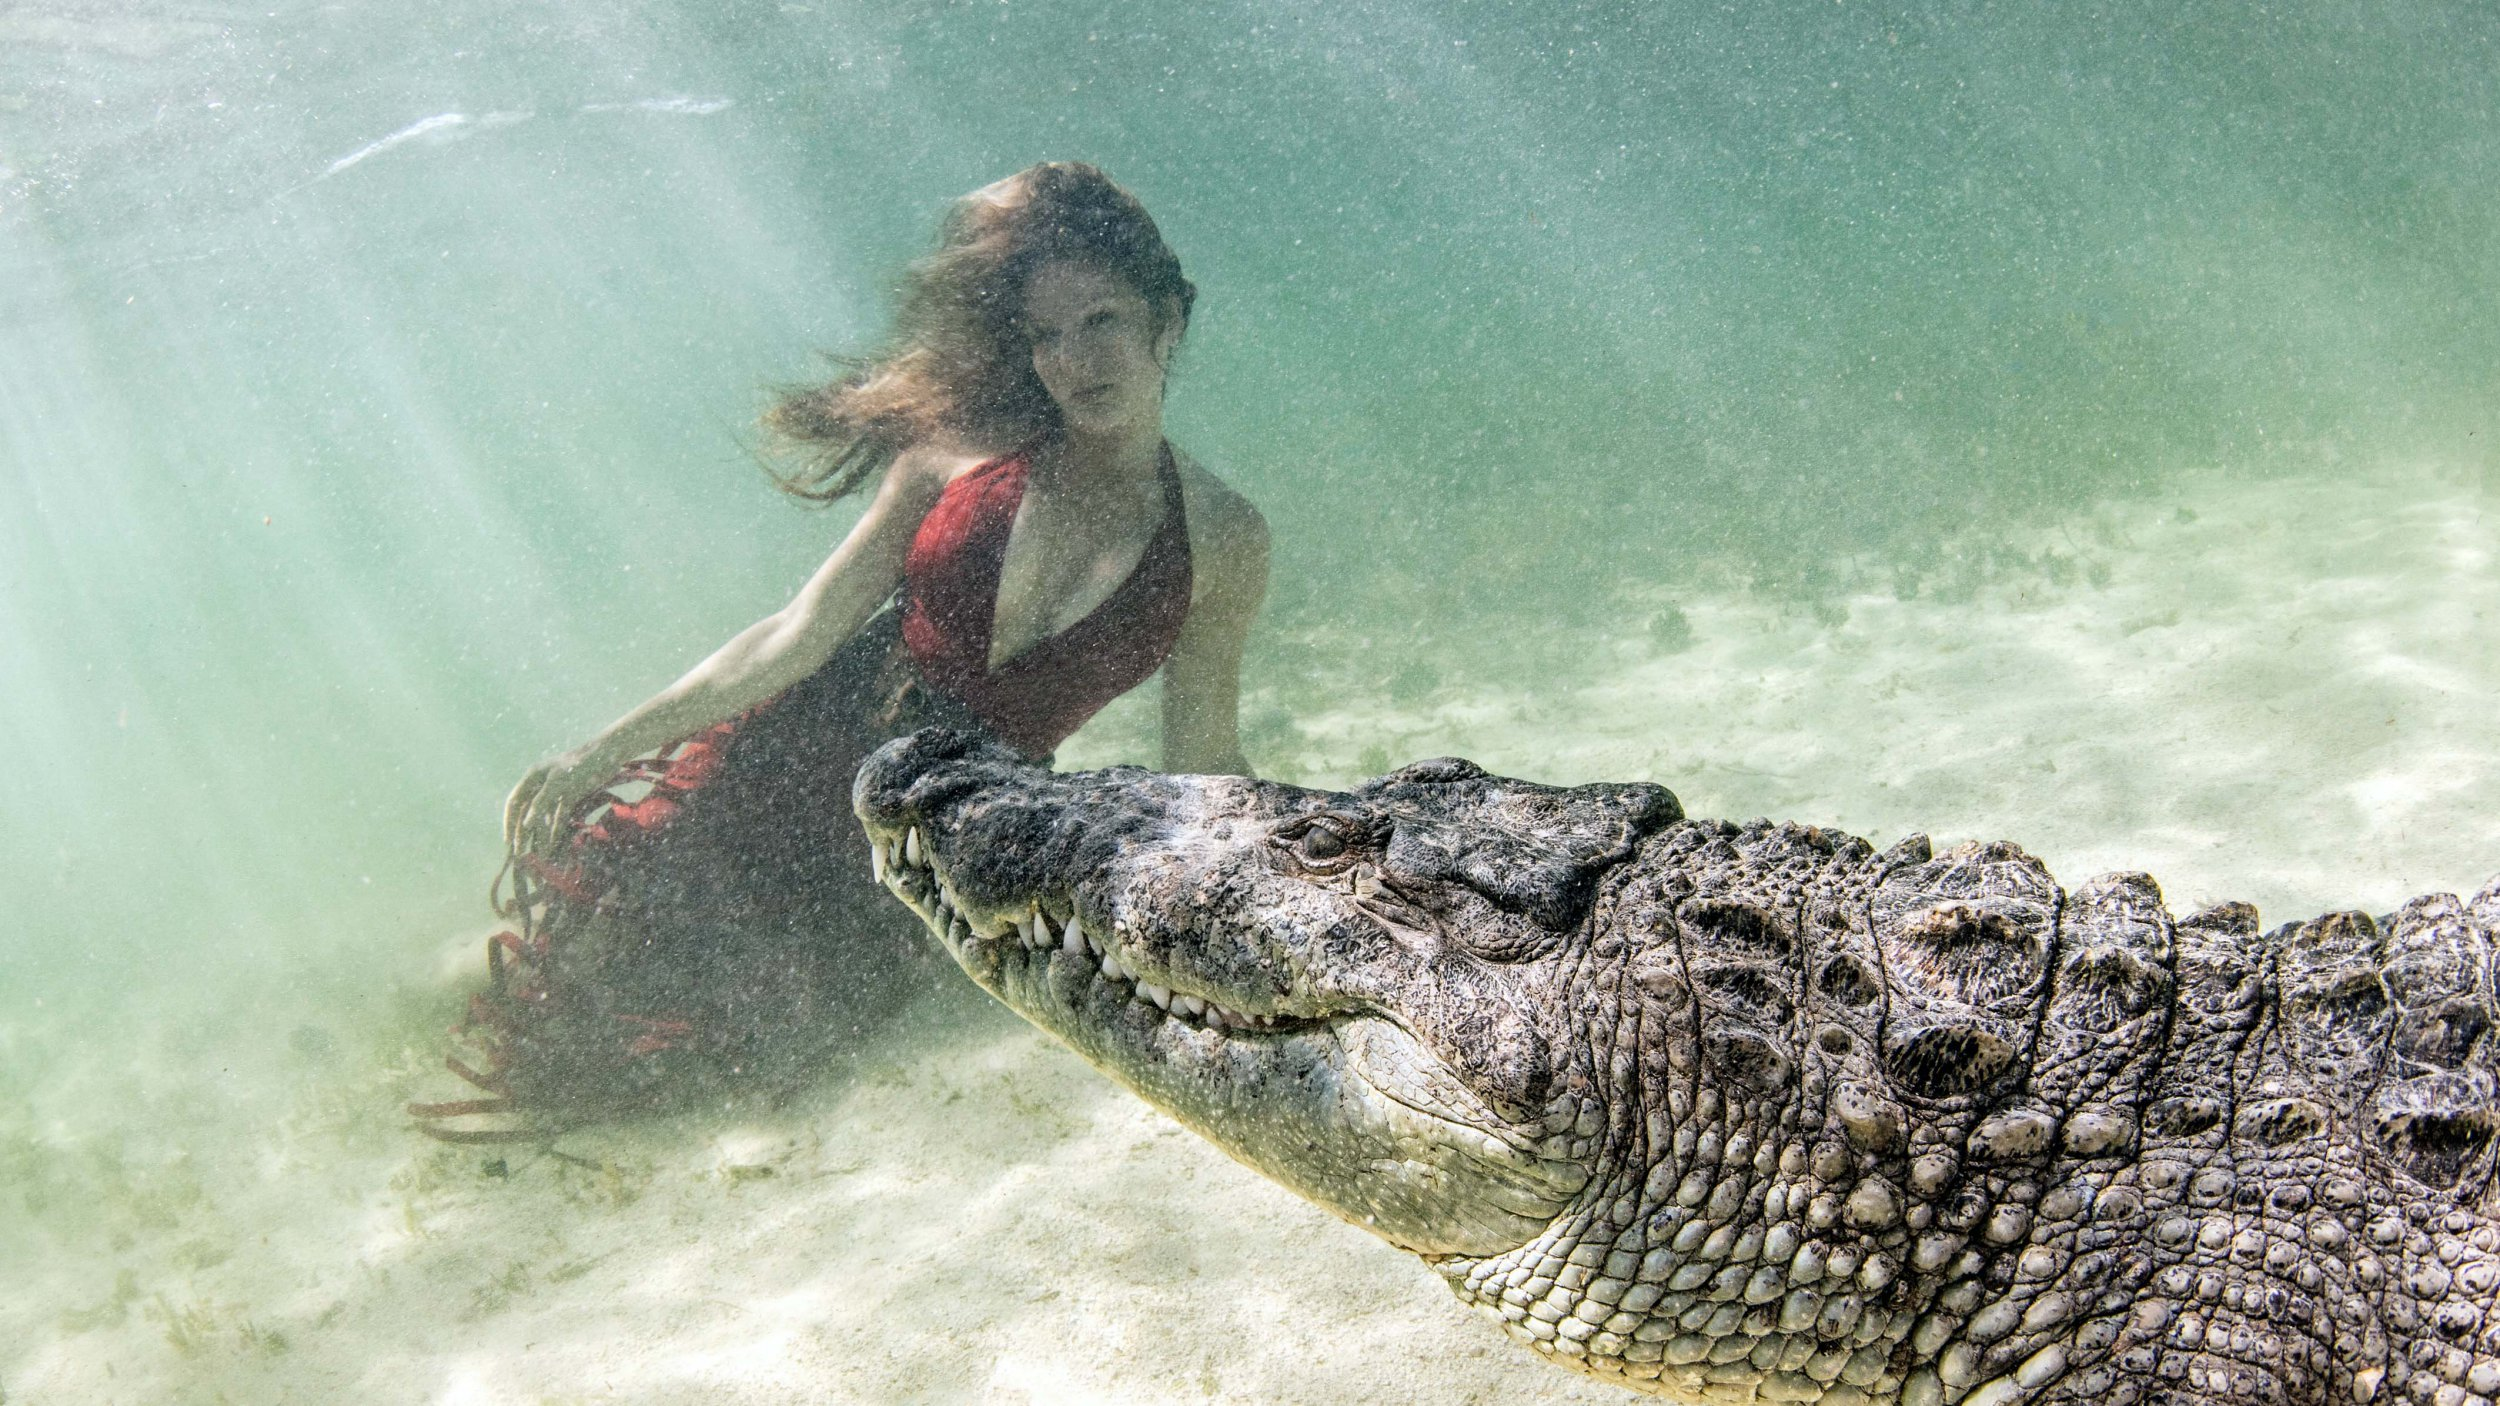 A model poses with a crocodile at Chinchorro Banks, Mexico